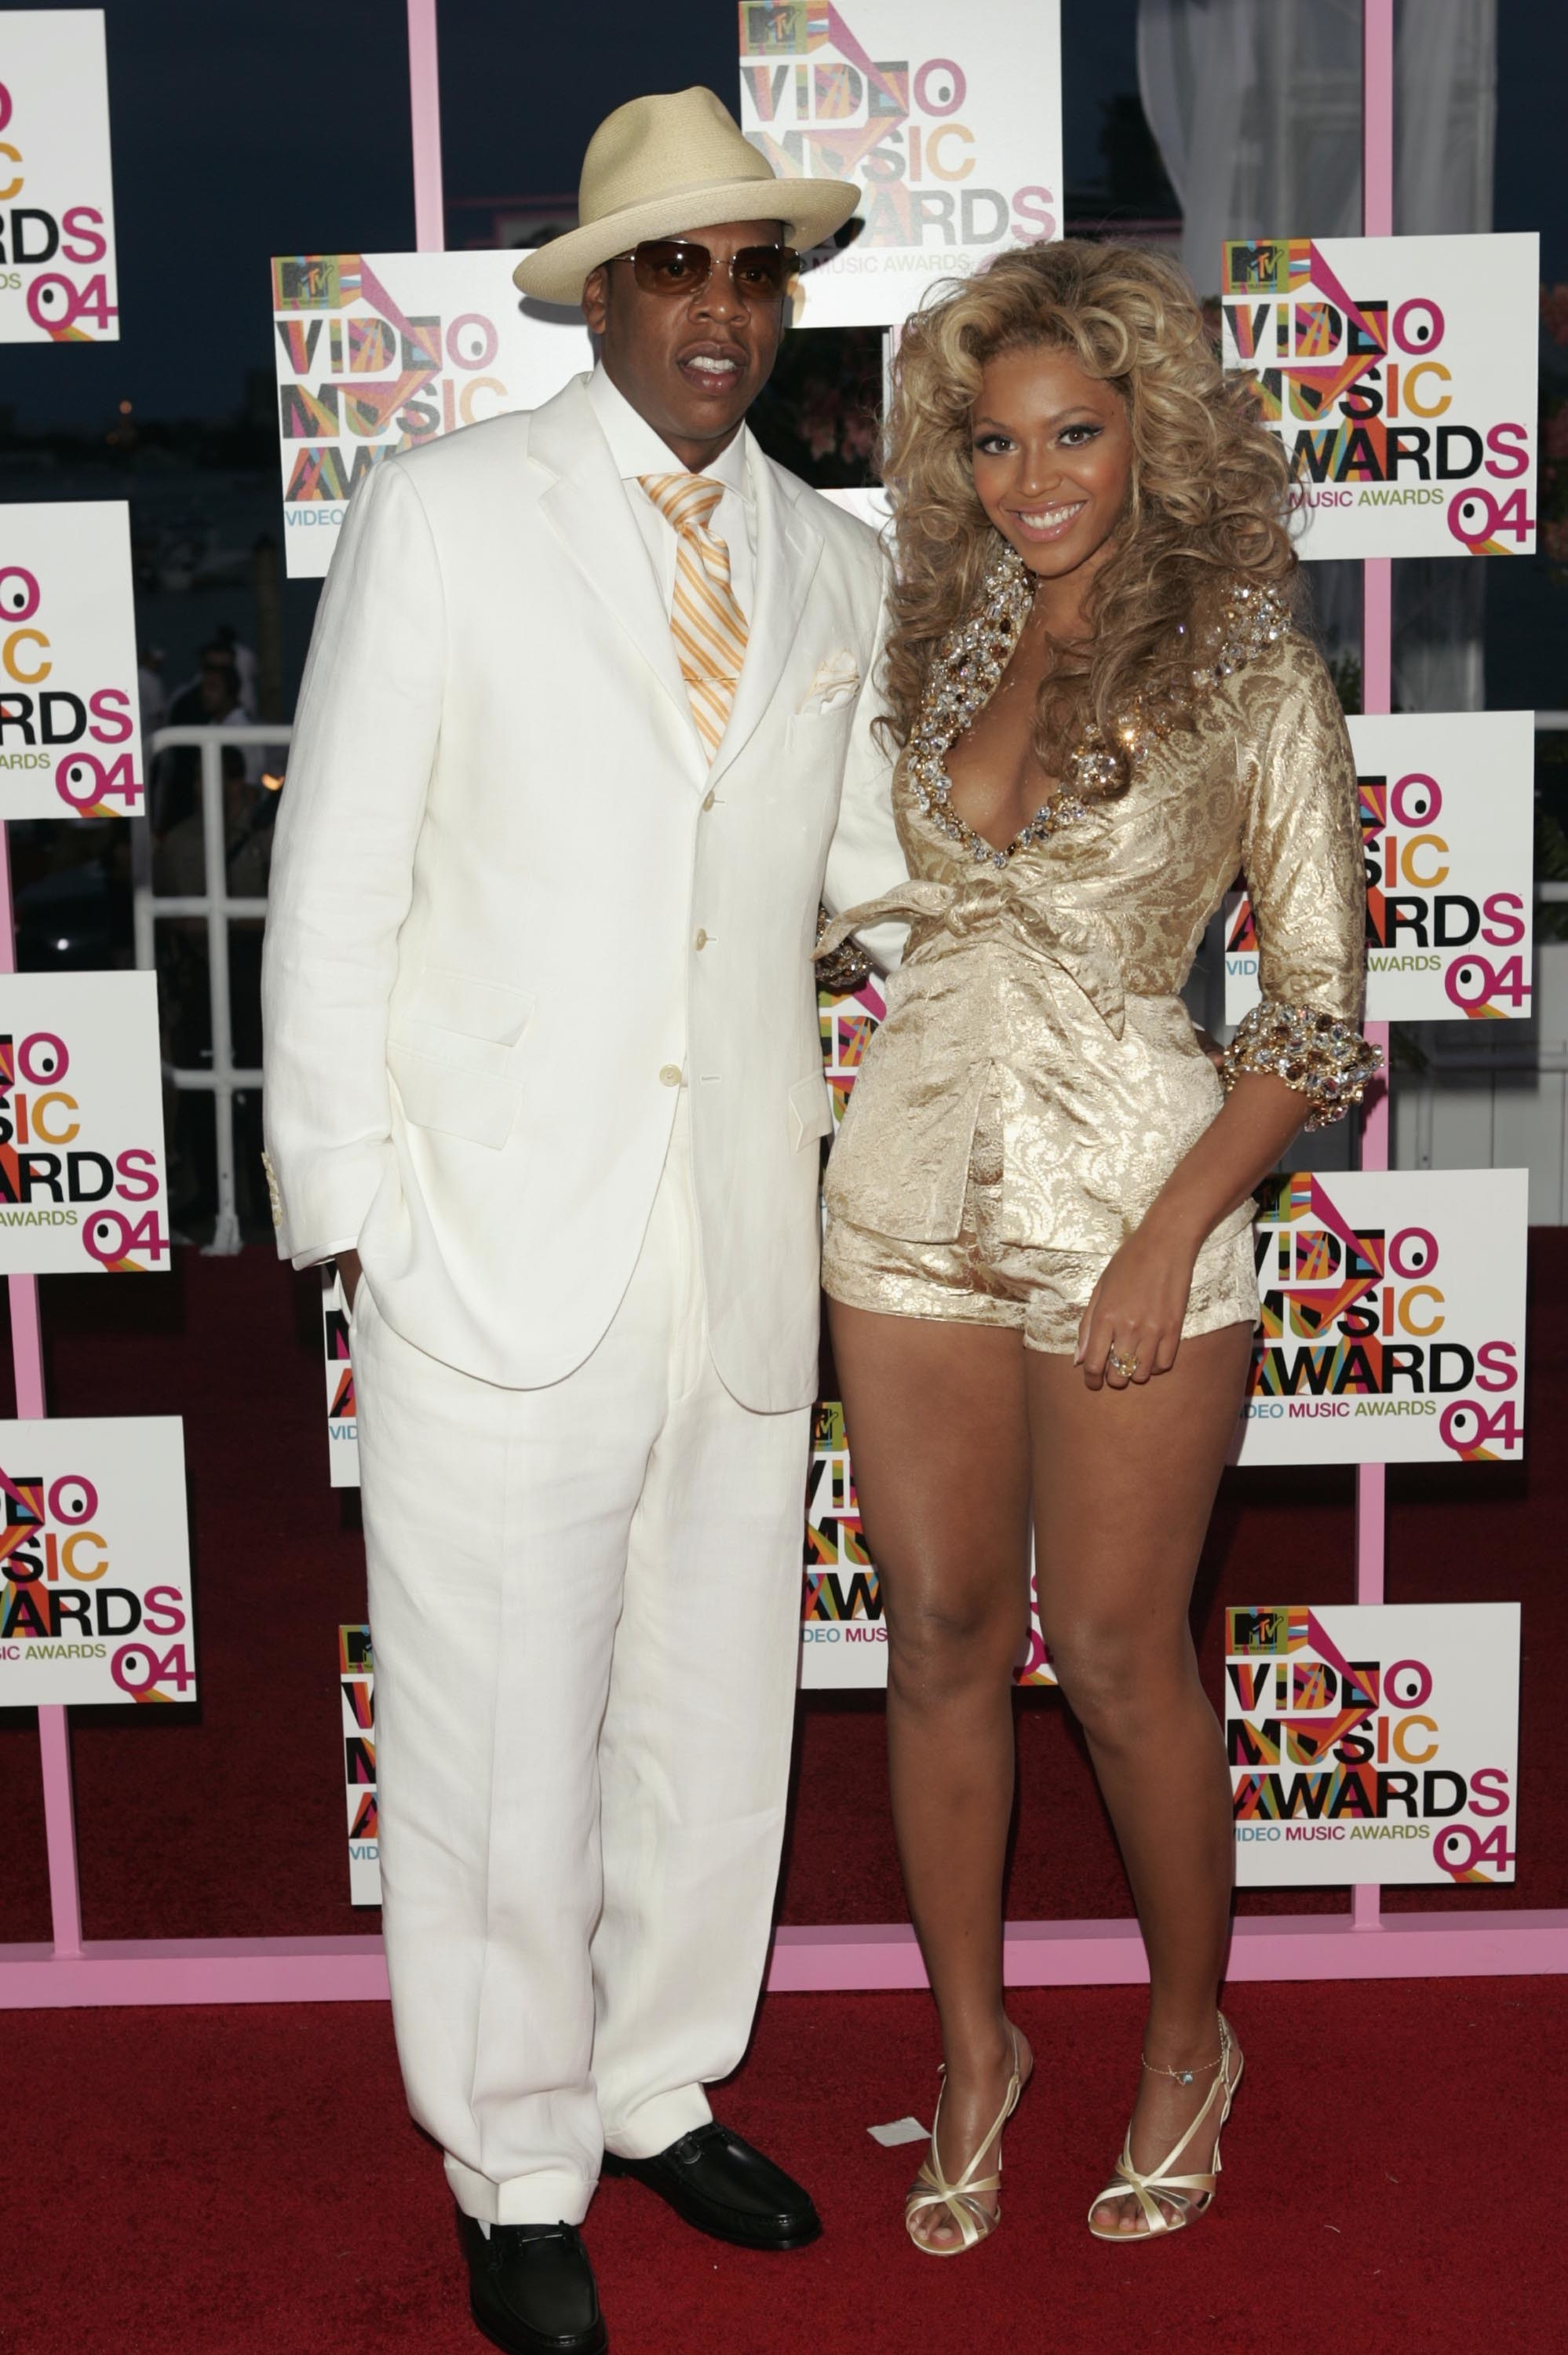 Jay Z and Beyoncé on the red carpet in 2003